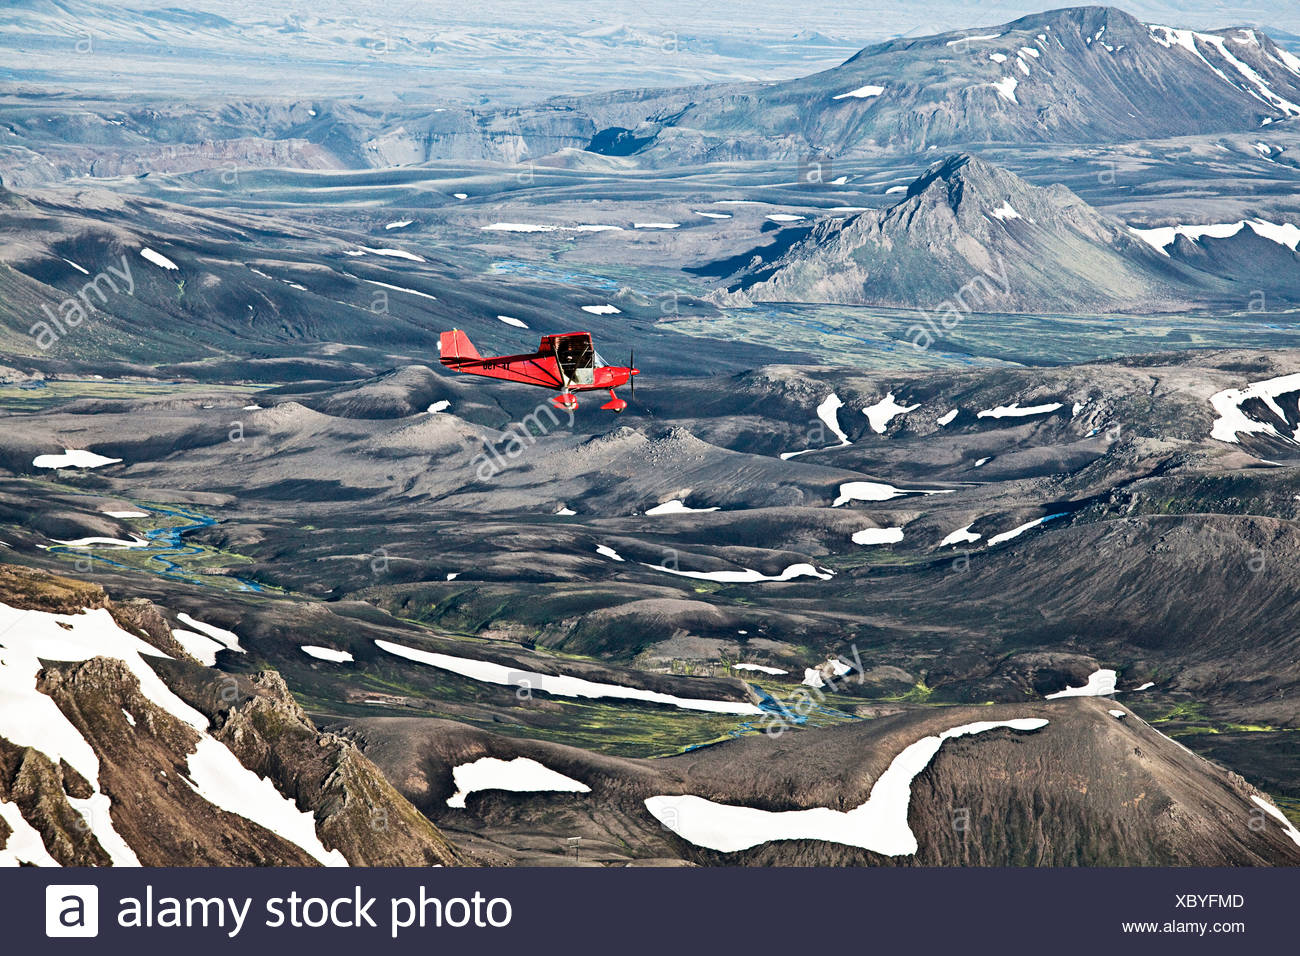 Aerial view, a red single-engine lightweight airplane flying over the volcanoes, Highlands of Iceland, Iceland, Europe - Stock Image